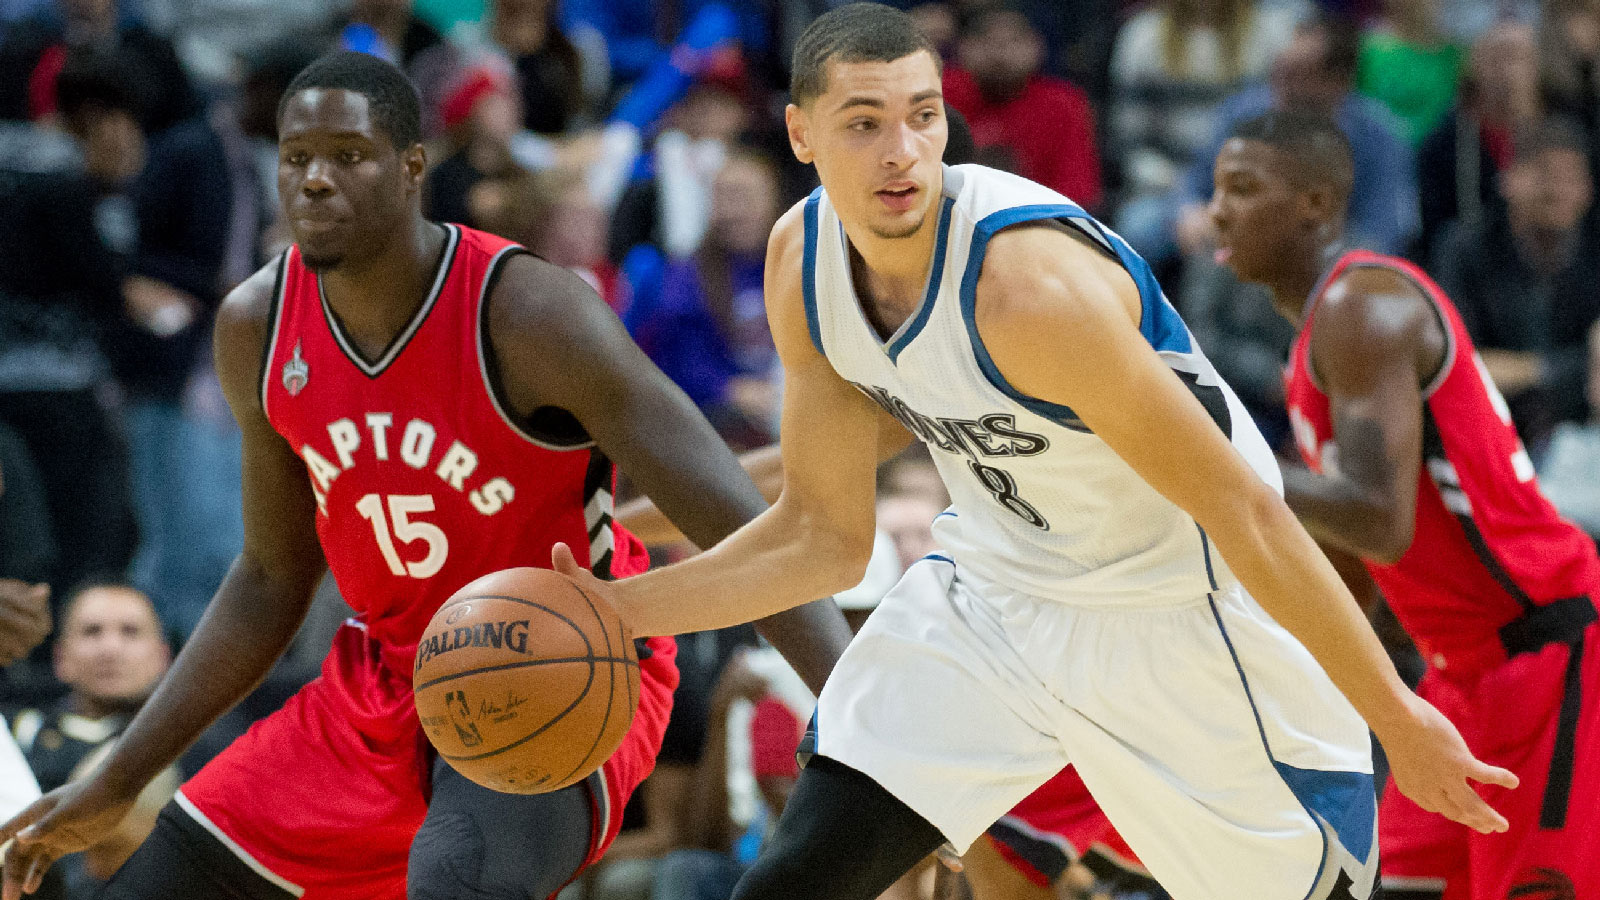 Wolves claw past Raptors in exhibition